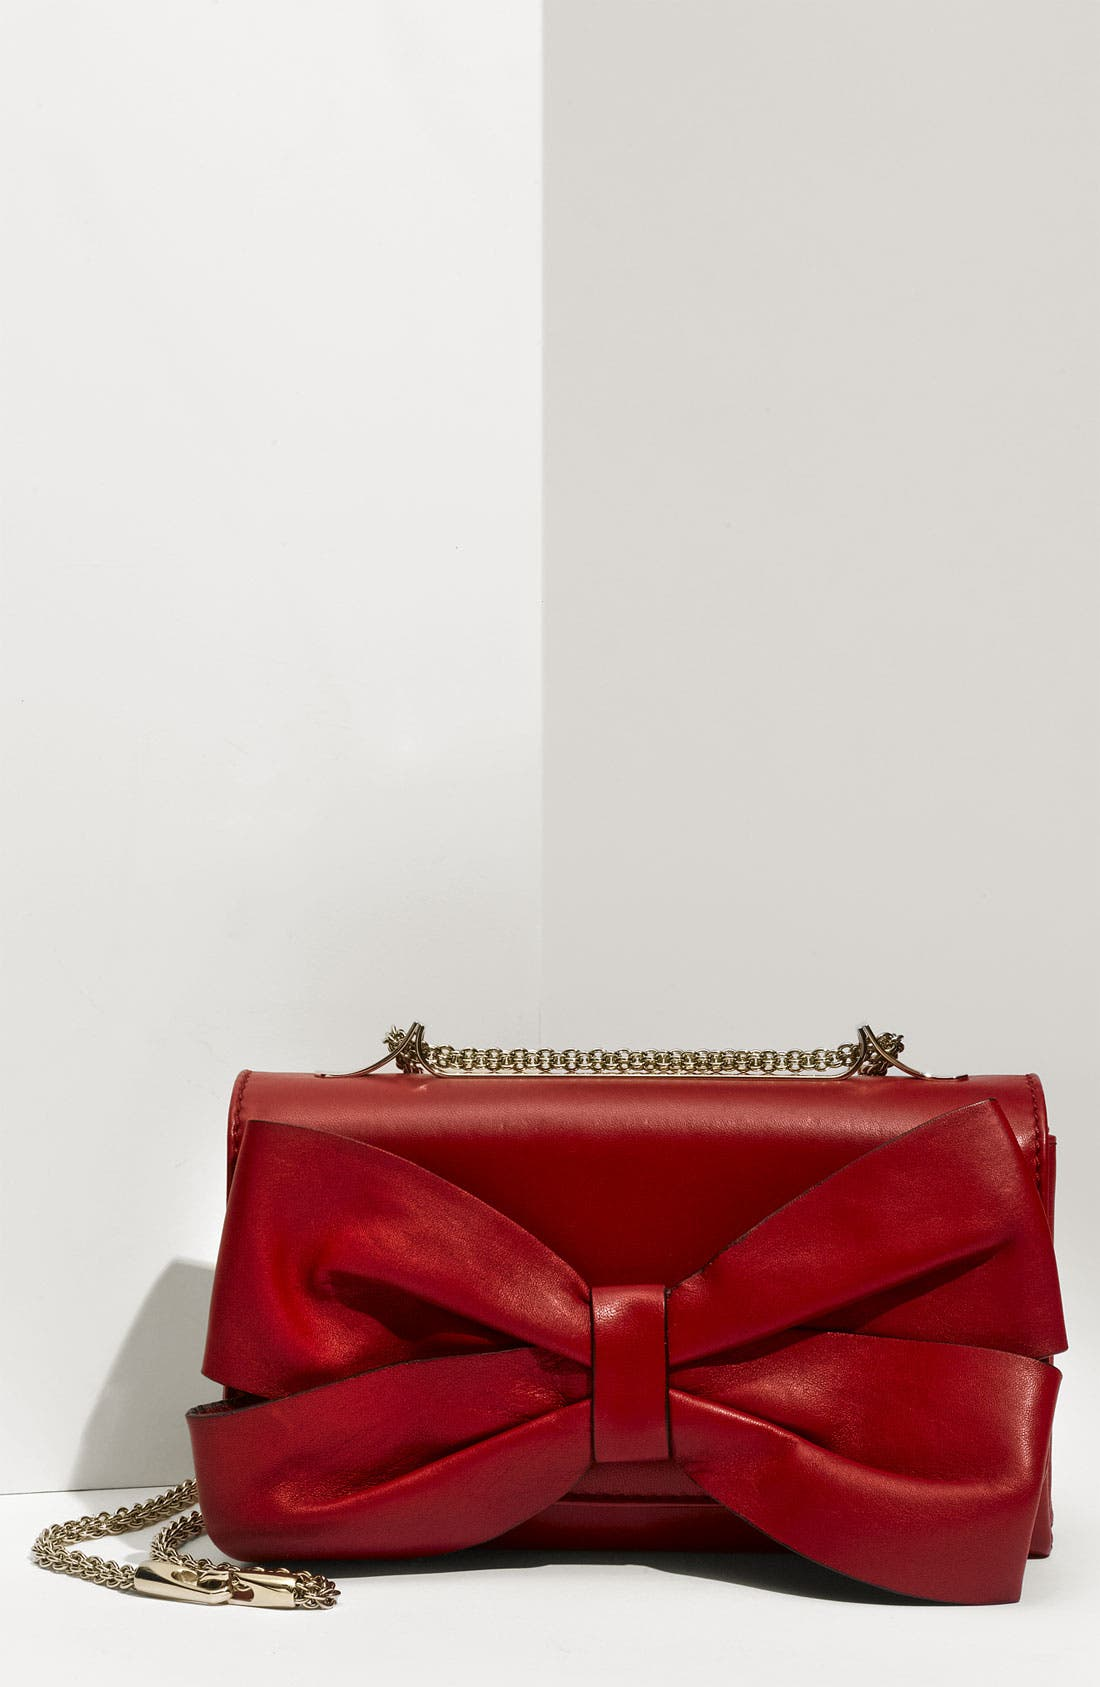 Alternate Image 1 Selected - Valentino 'Bow Flap' Leather Shoulder Bag